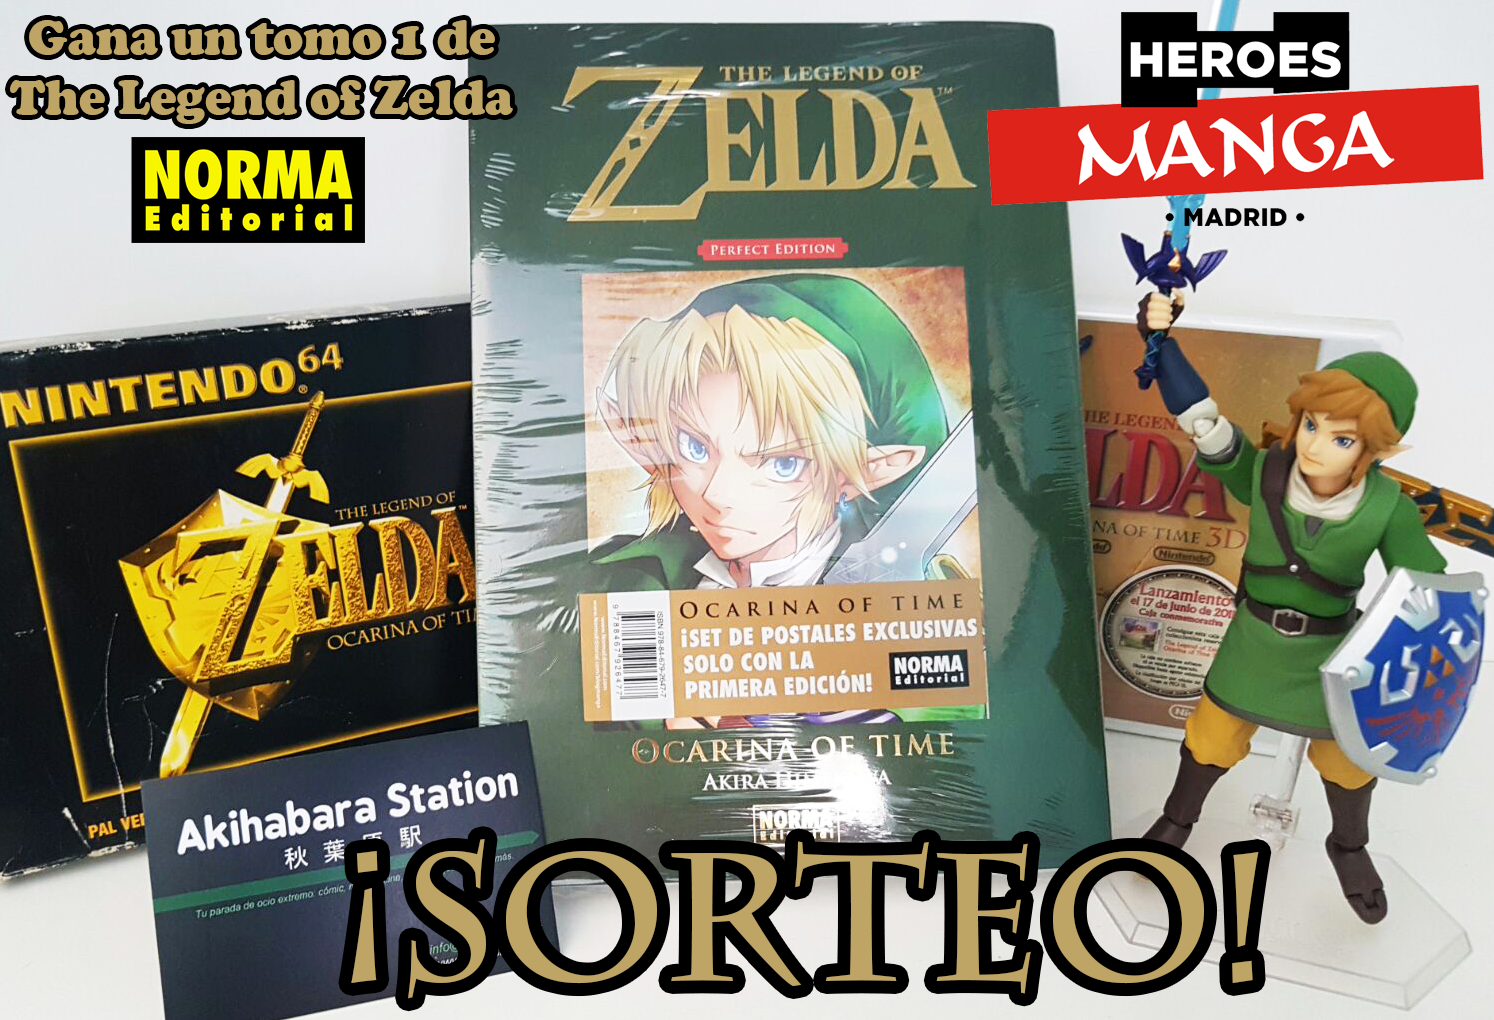 THE LEGEND OF ZELDA PERFECT EDITION: OCARINA OF TIME de Akira Himekawa